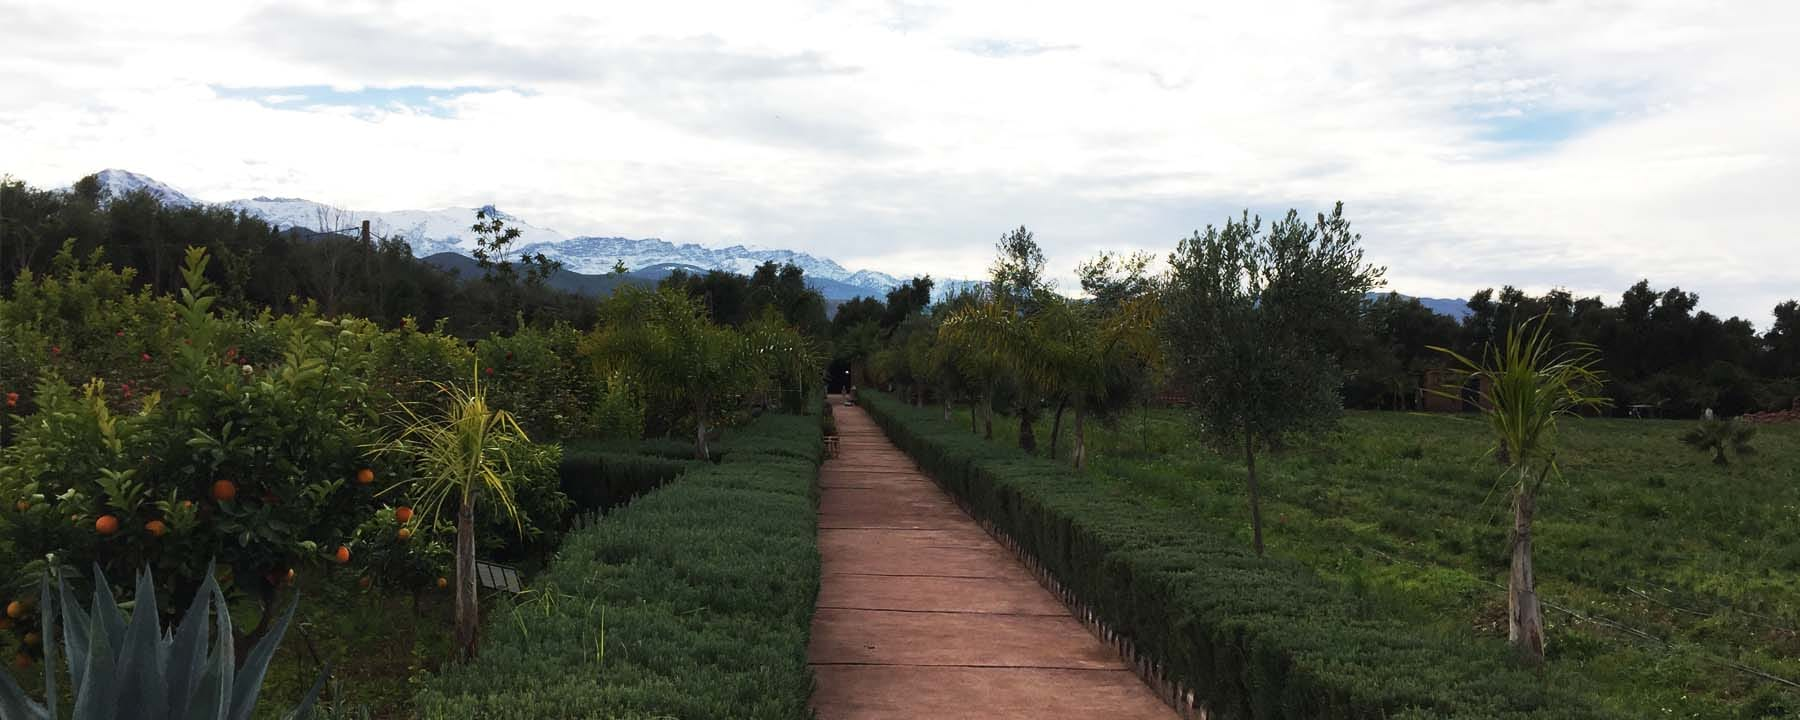 paradis-du-safran-marrakech_source-nosade